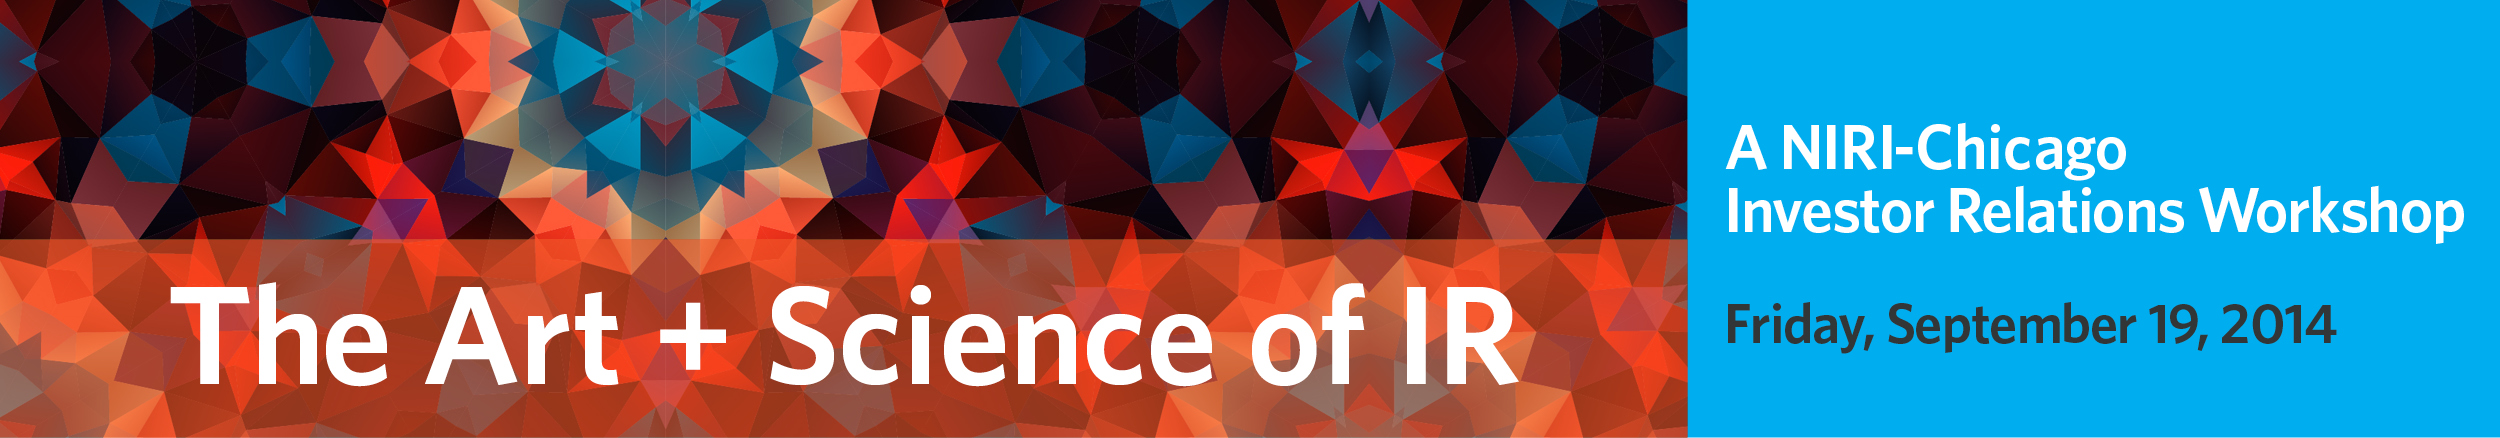 NIRI 2014_Art+Science_Banner_final_300dpi